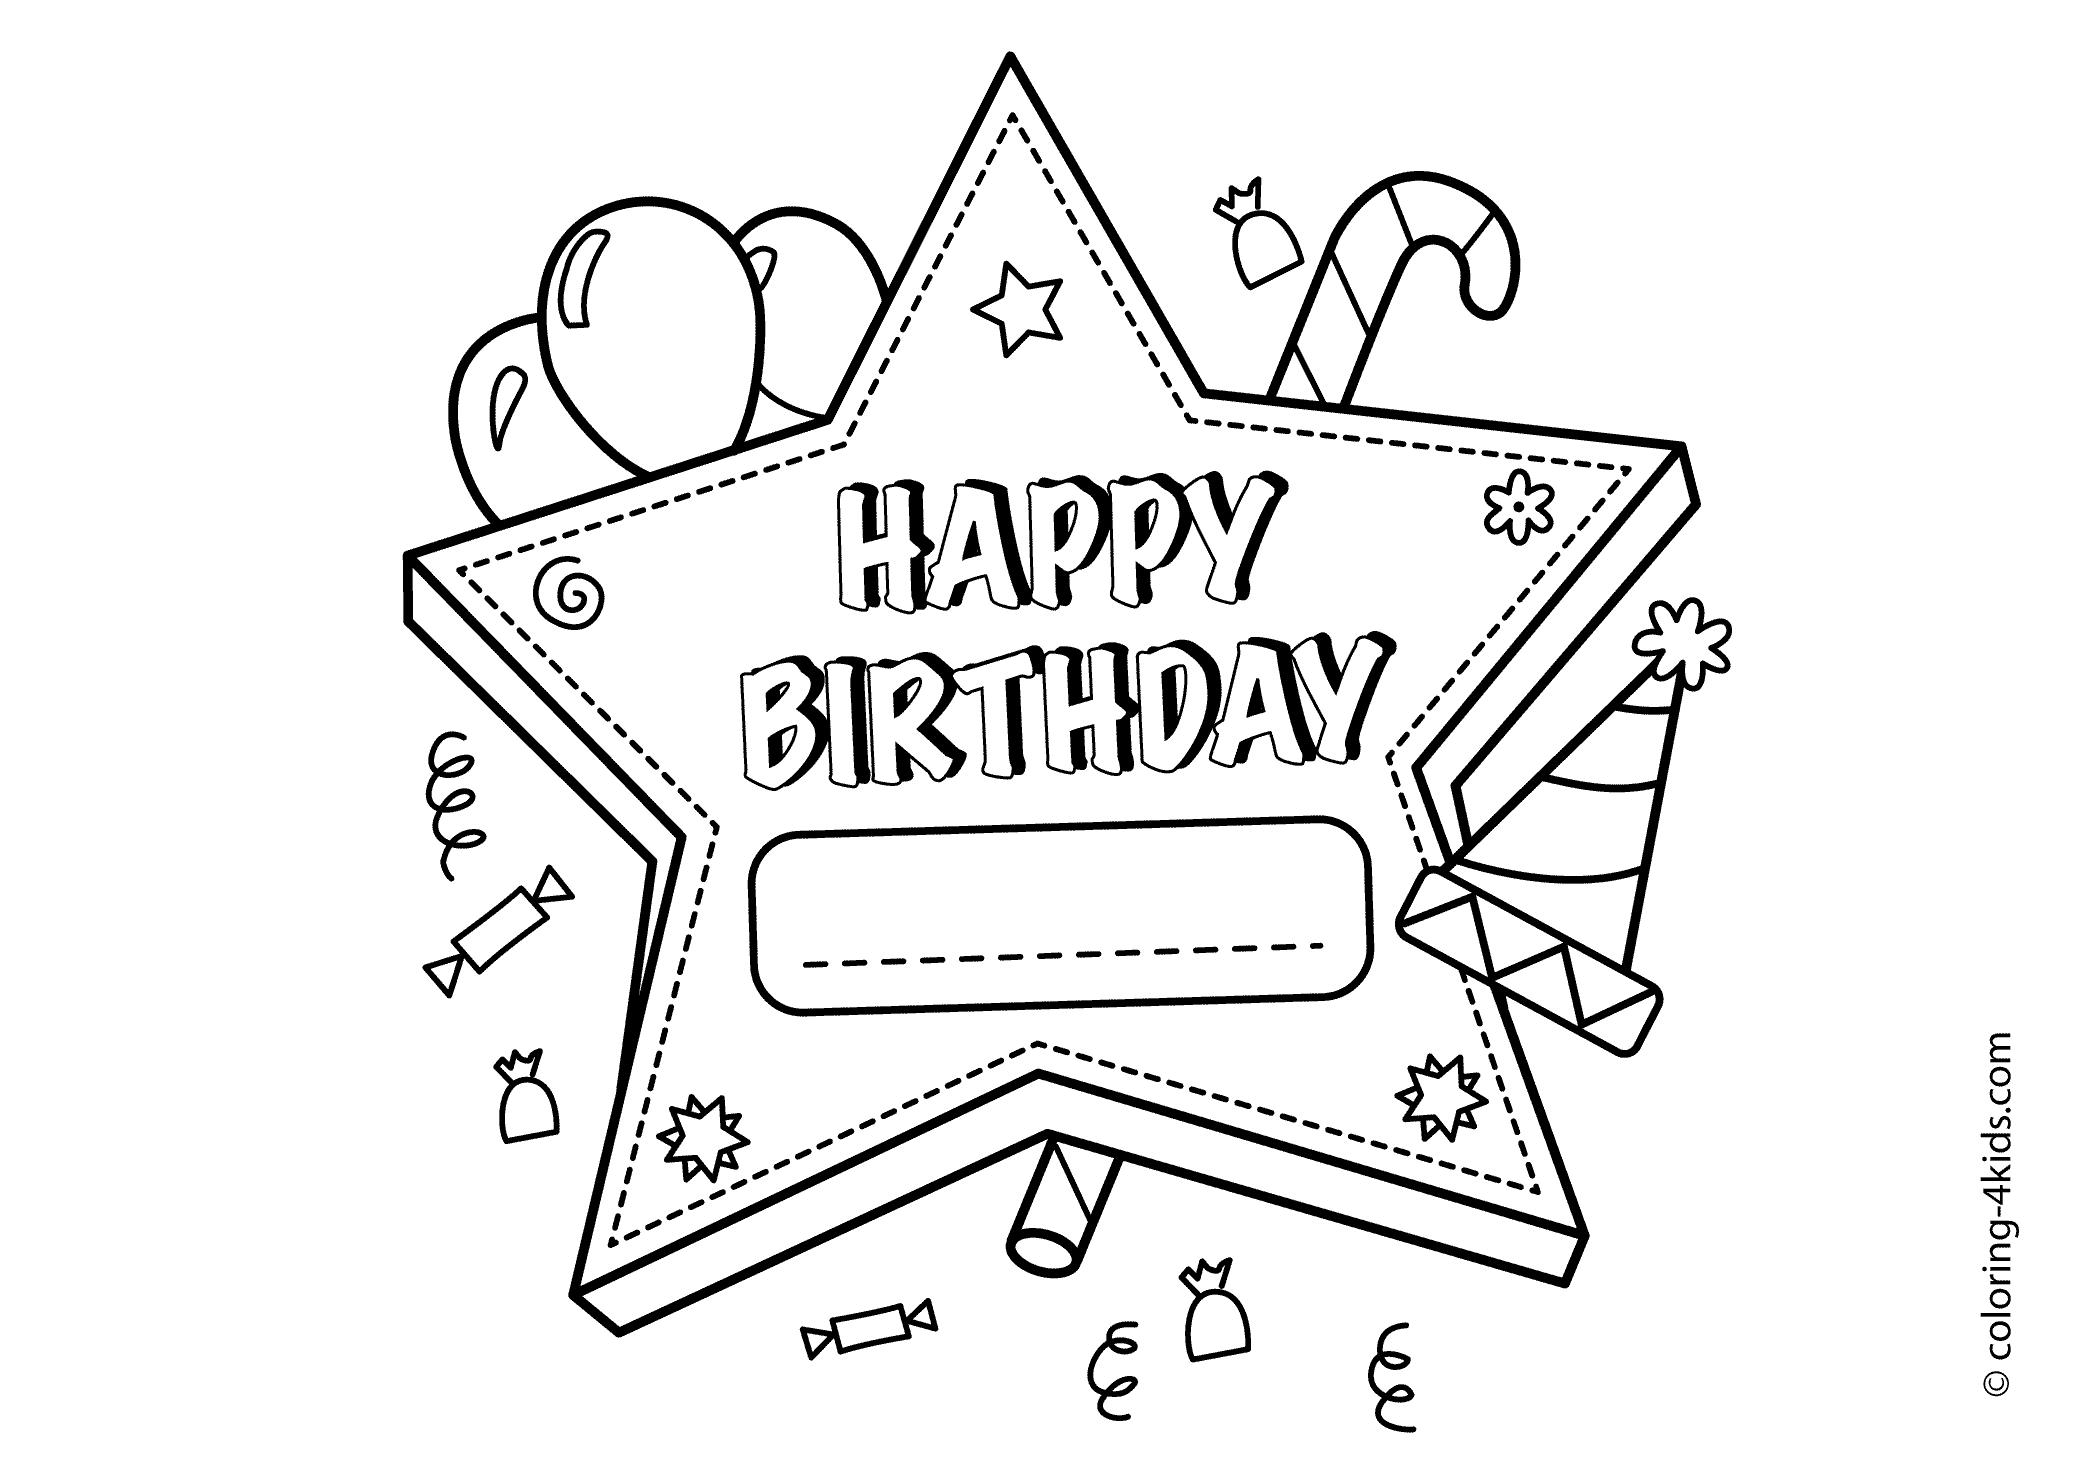 happy birthday coloring ; proven-happy-birthday-coloring-sheet-printable-pages-that-say-surging